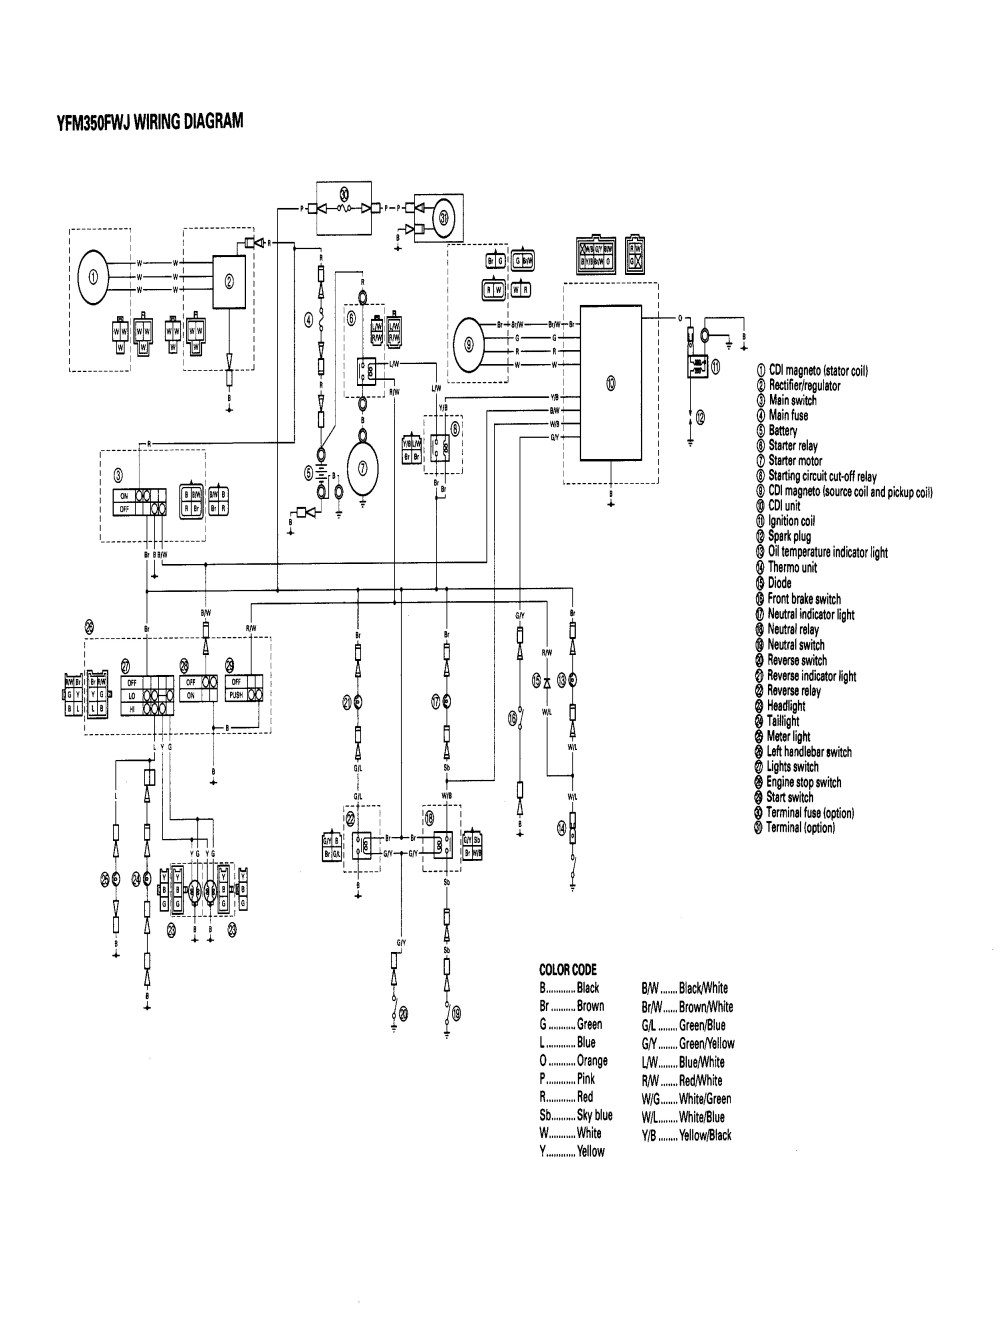 medium resolution of yamaha snowmobile wiring diagrams wiring diagrams monyamaha snowmobile wiring diagrams wiring diagram 2007 yamaha phazer wiring